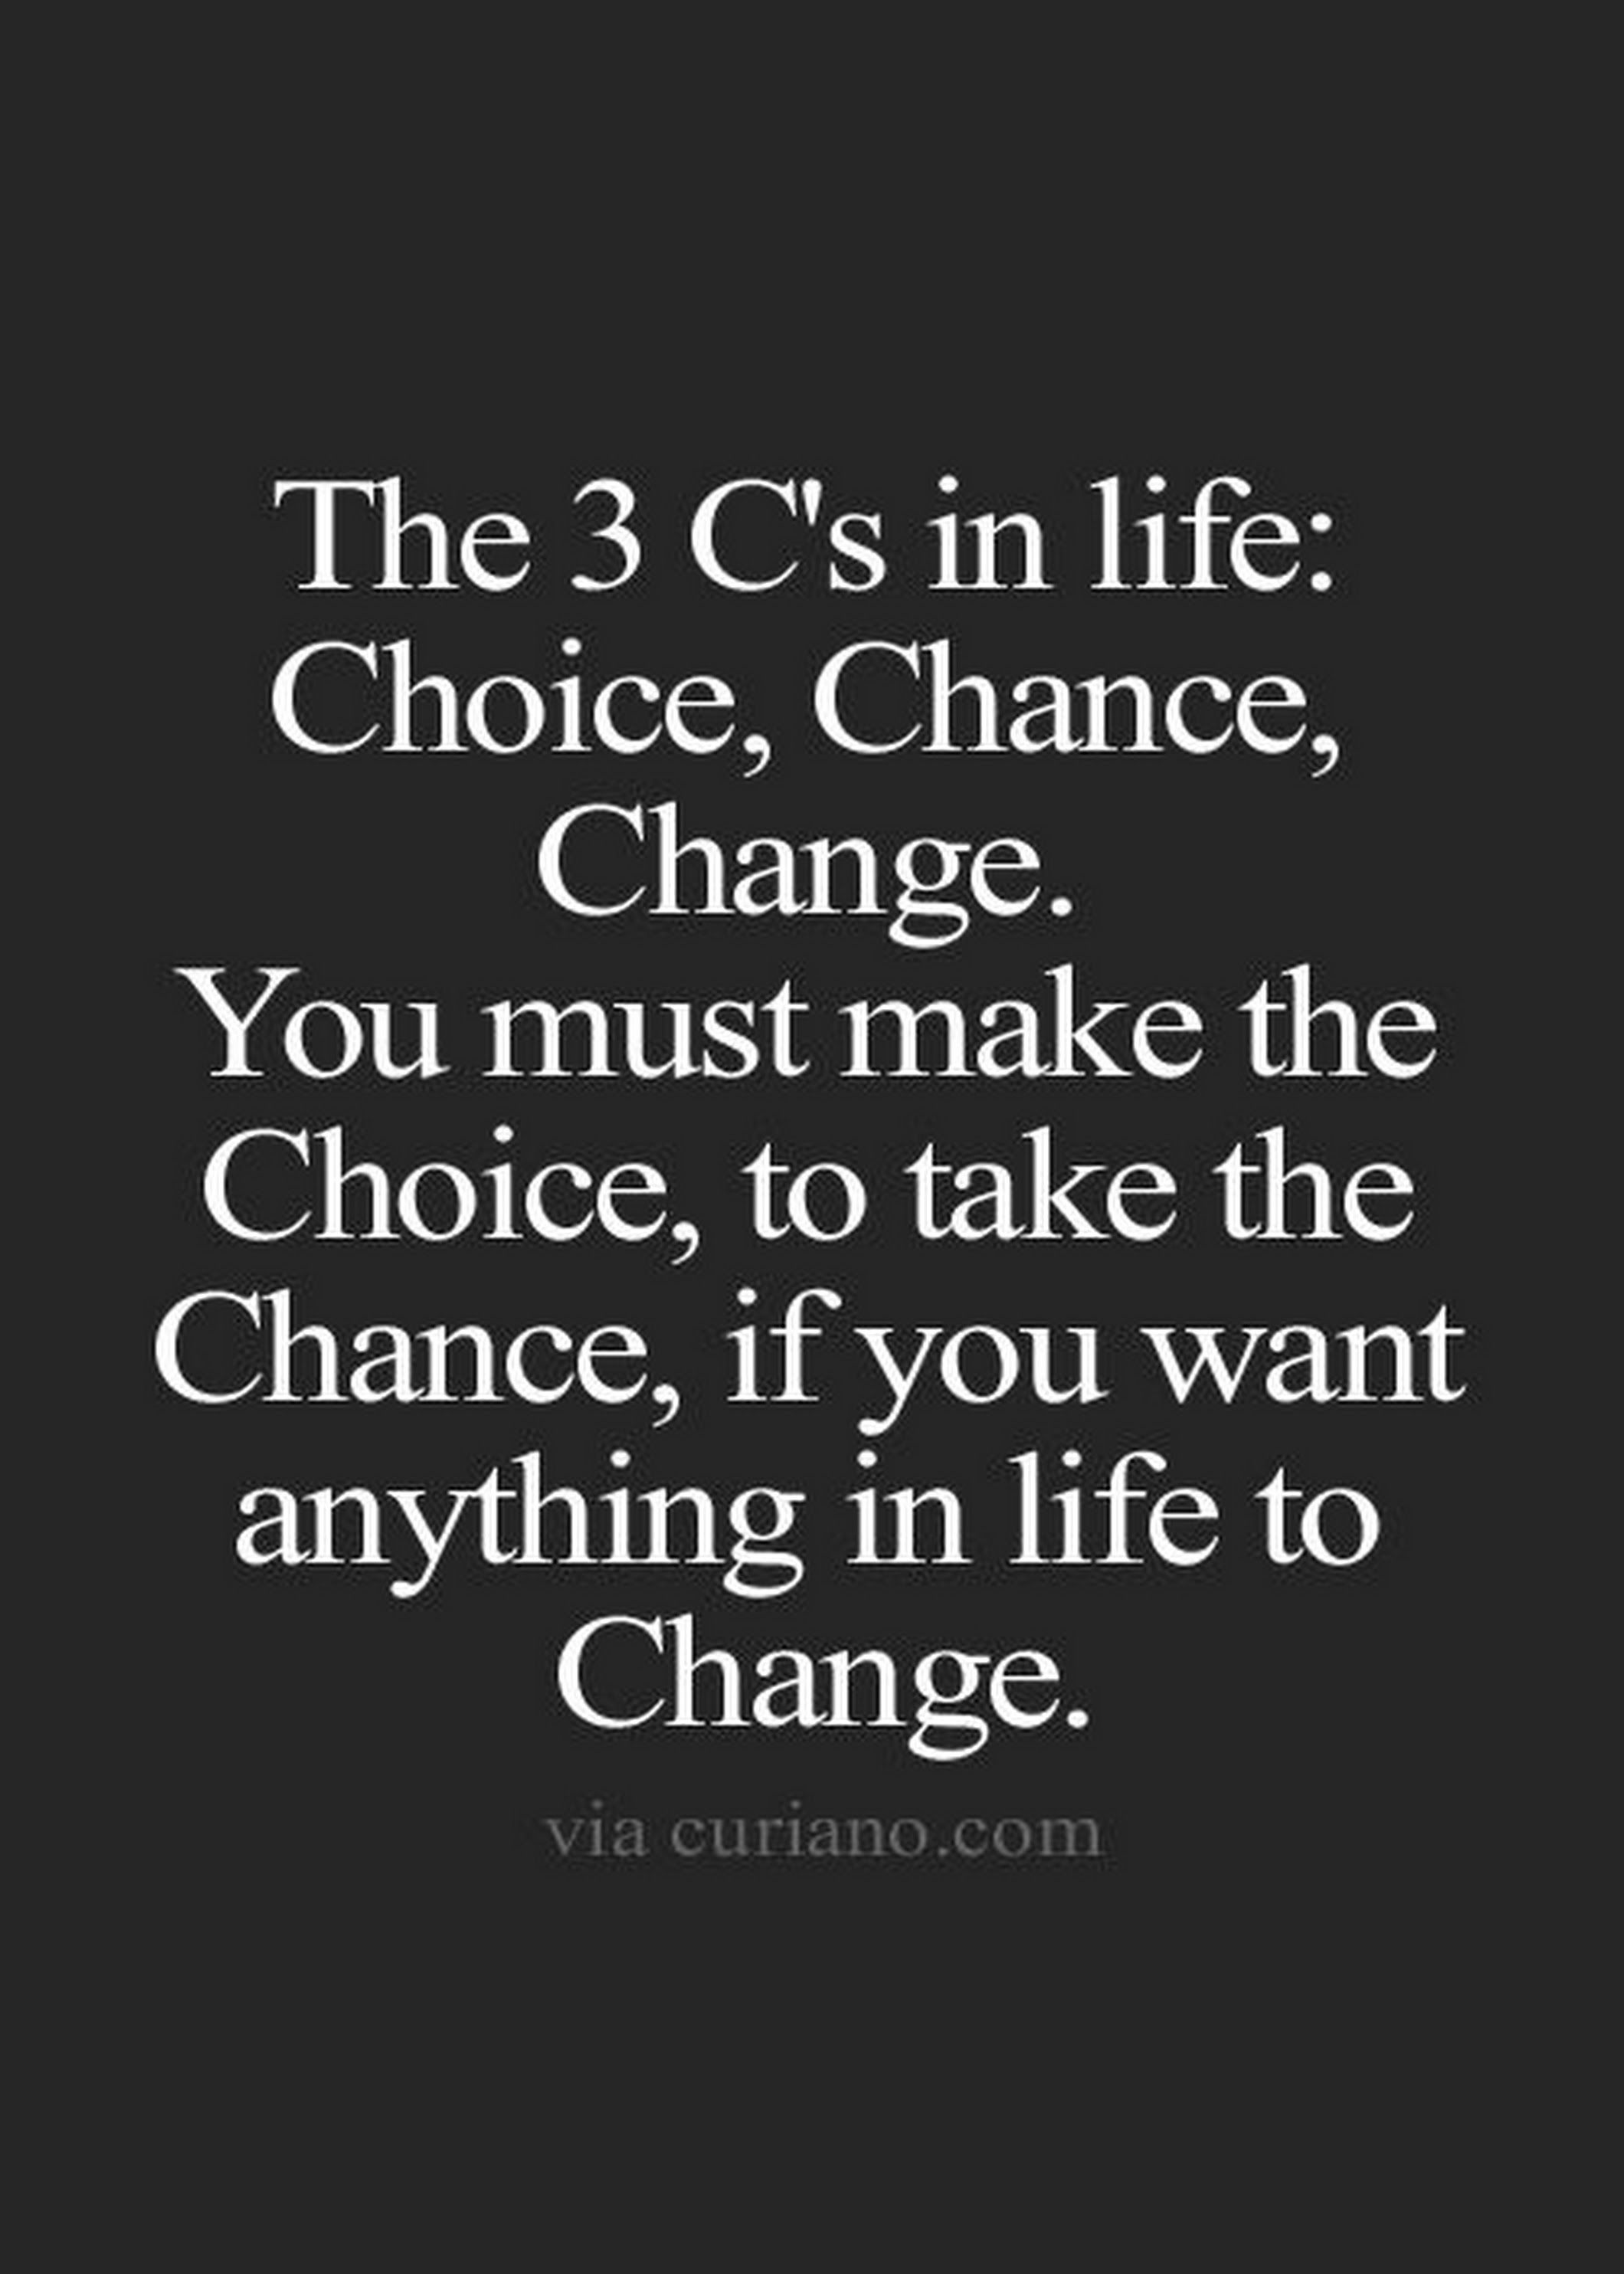 Greatest Quotes On Life The 3 C's In Life Choice Chance Changeyou Must Make The